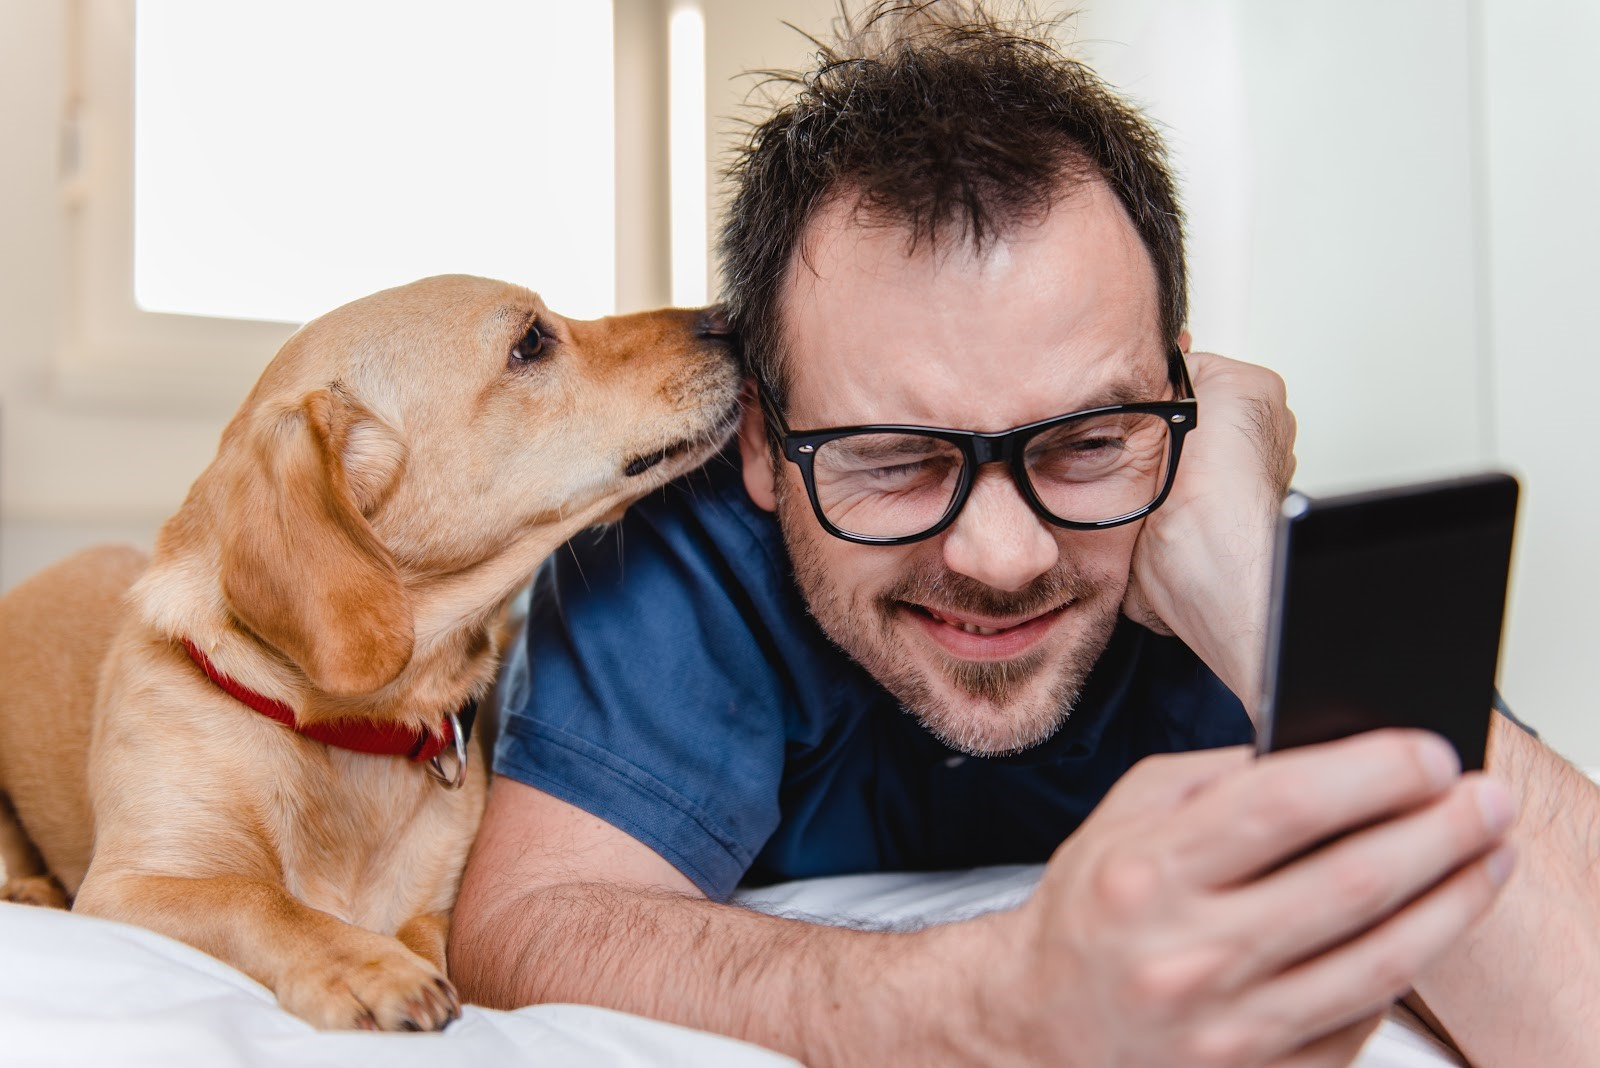 Our App Makes Caring For Your Pet Easier